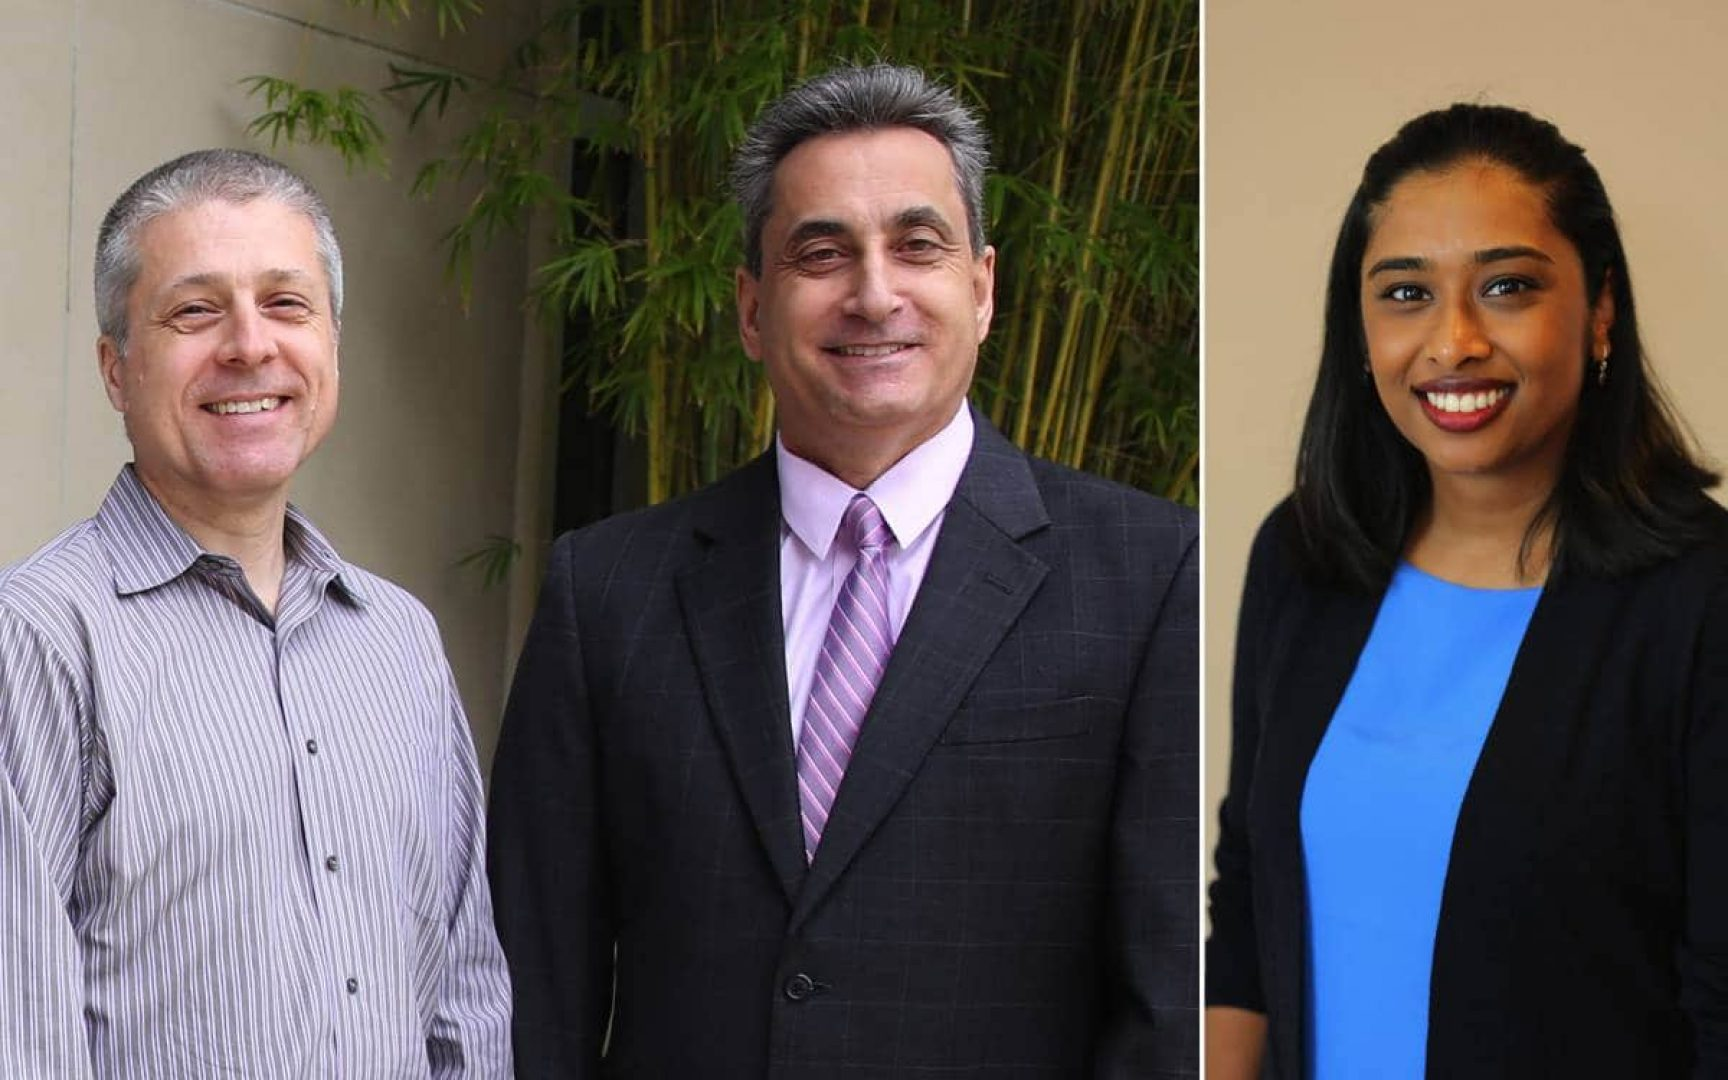 Alan Cooke, Larry DiMatteo and Sonia Singh